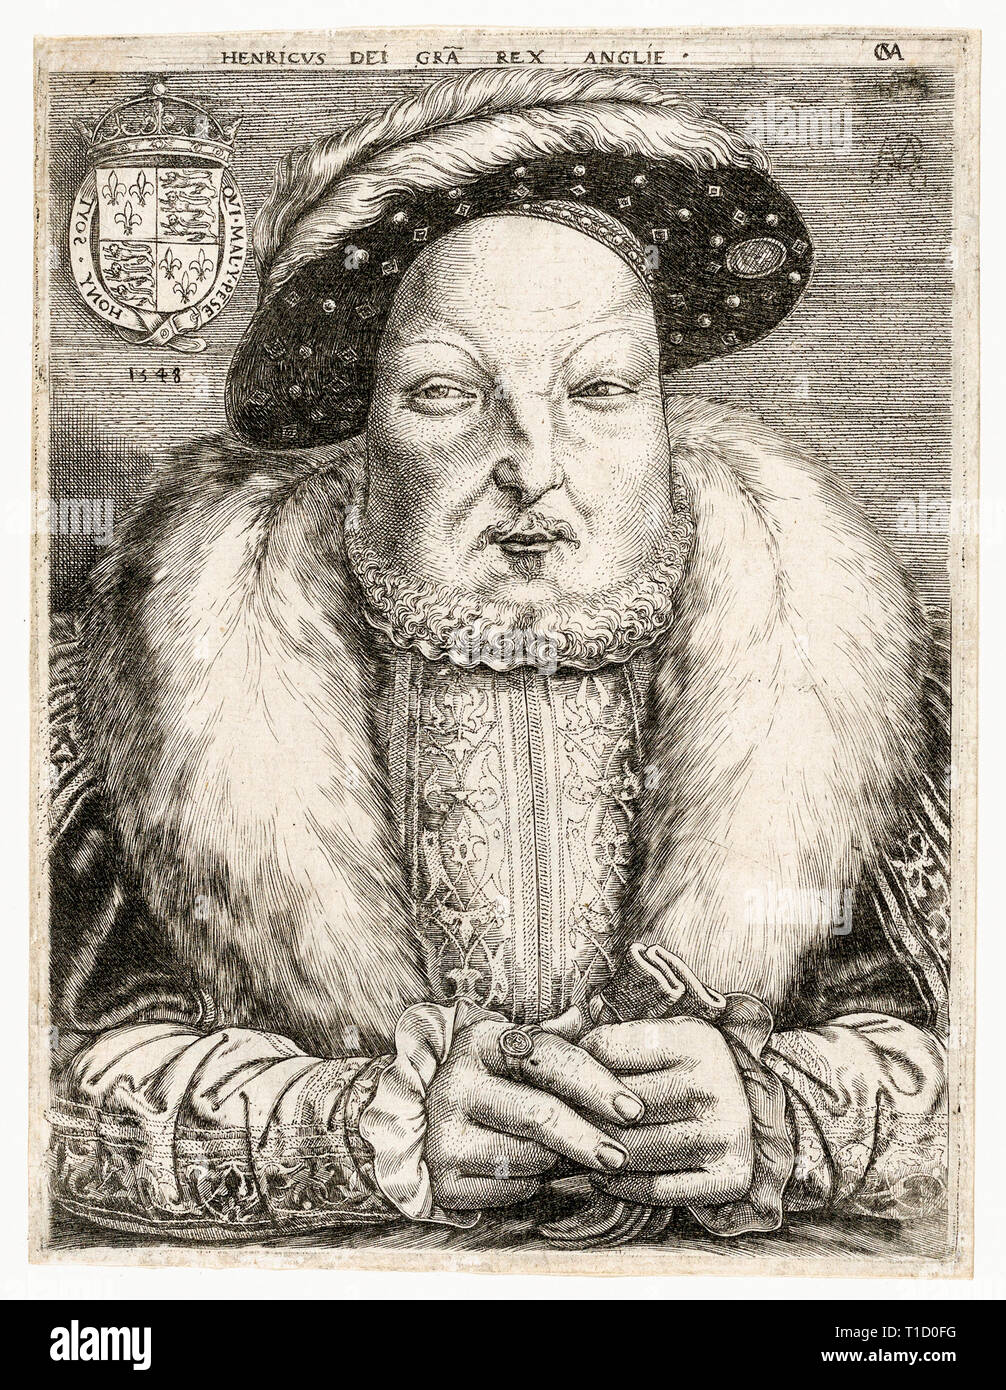 King Henry VIII, portrait, c . 1547 by Cornelis Massys RKM - Portrait of Henry VIII wearing luxurious clothing decorated with Moresque patterns. - Stock Image